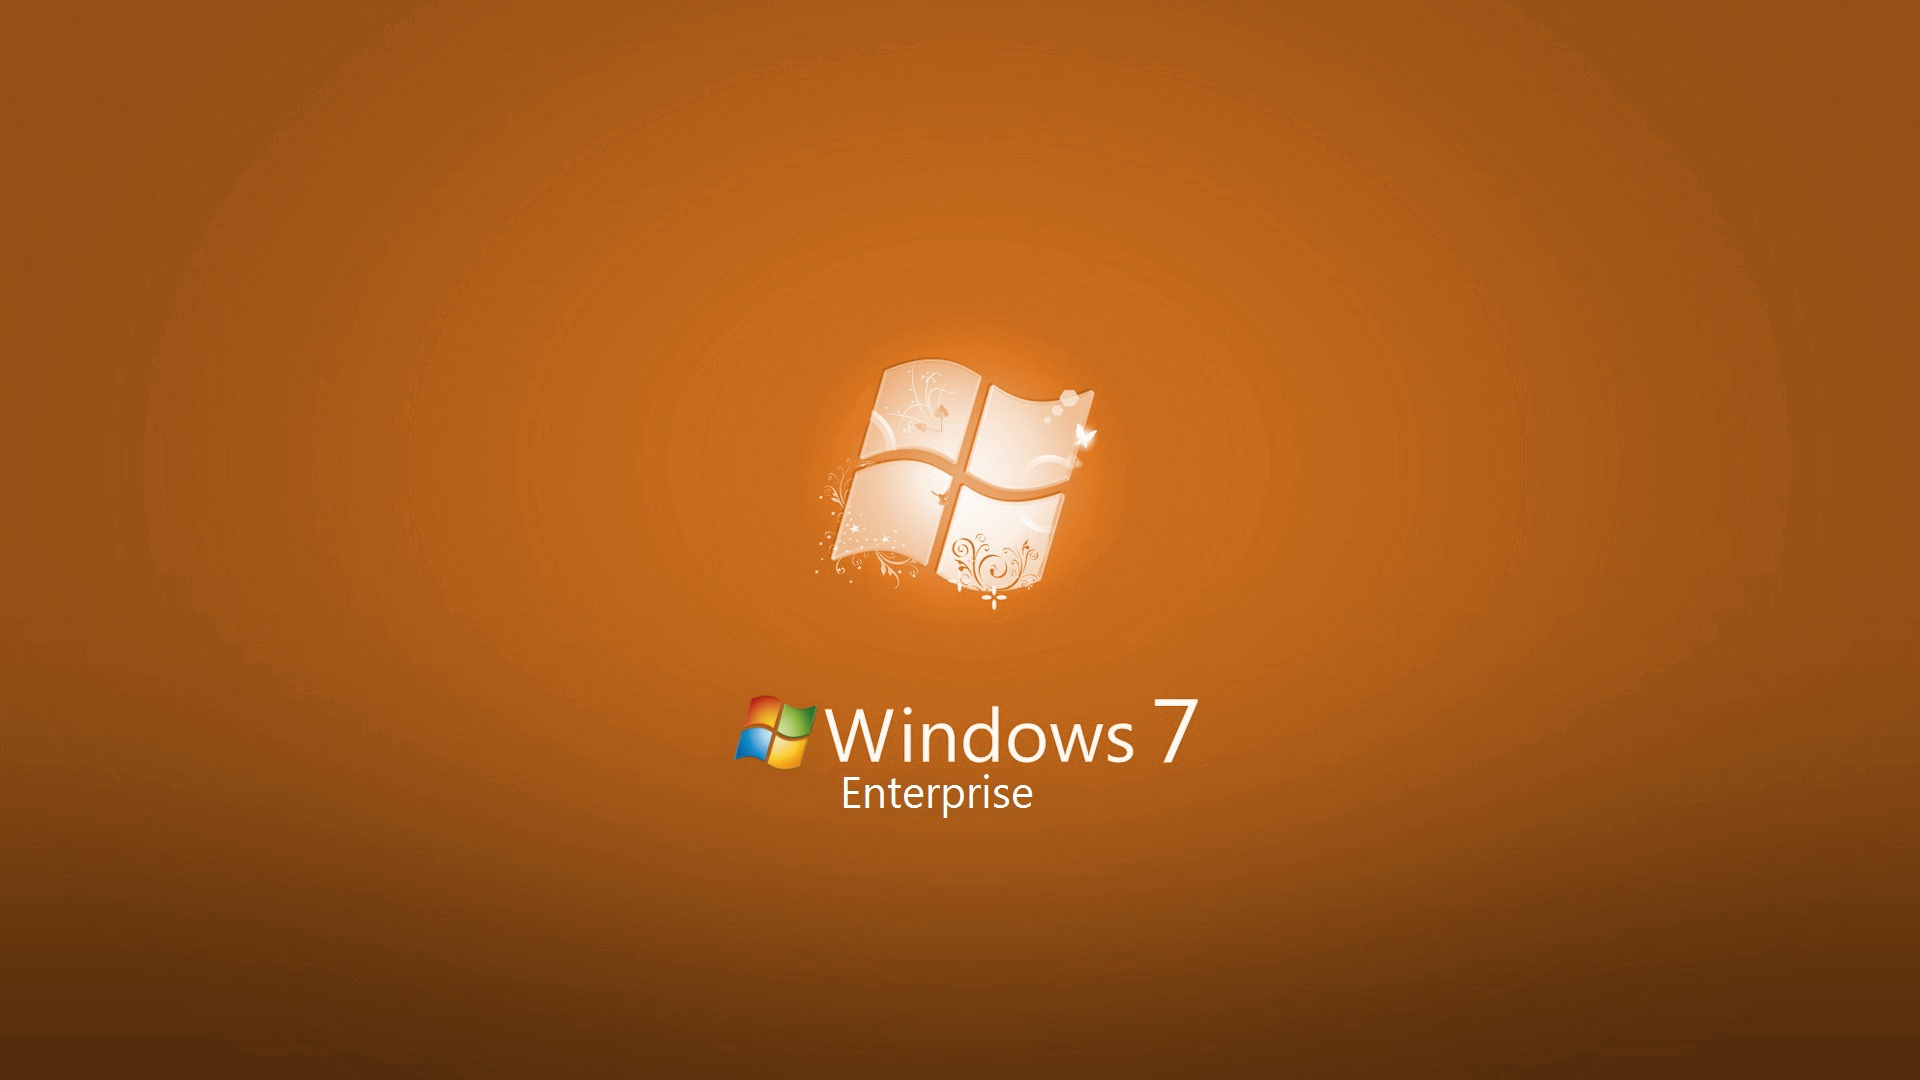 Window 7 desktop wallpaper free download